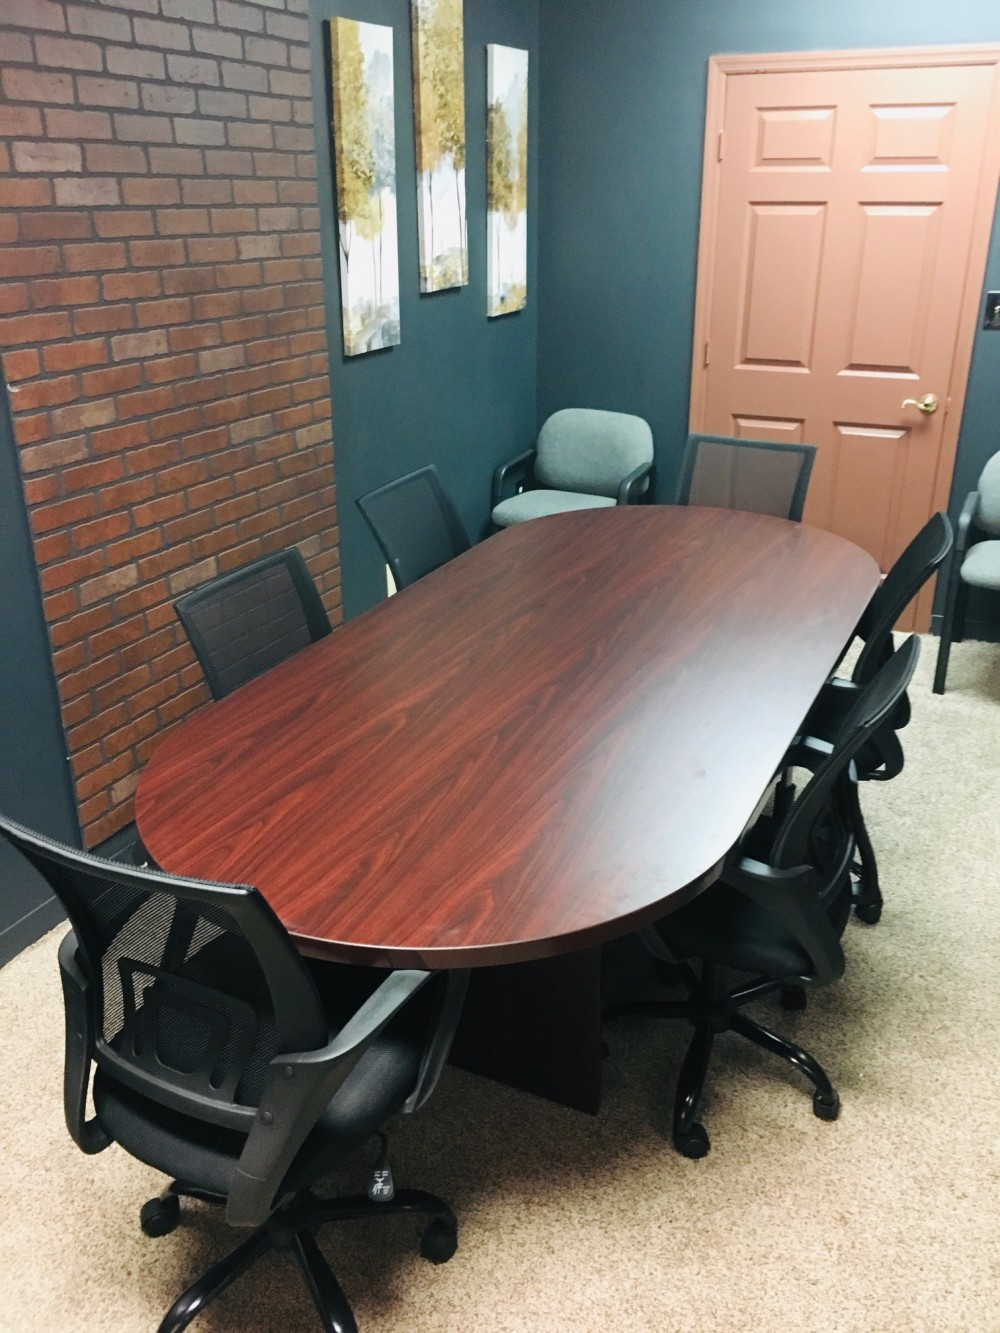 Meeting Room at Sharicom Workspace - Lexington